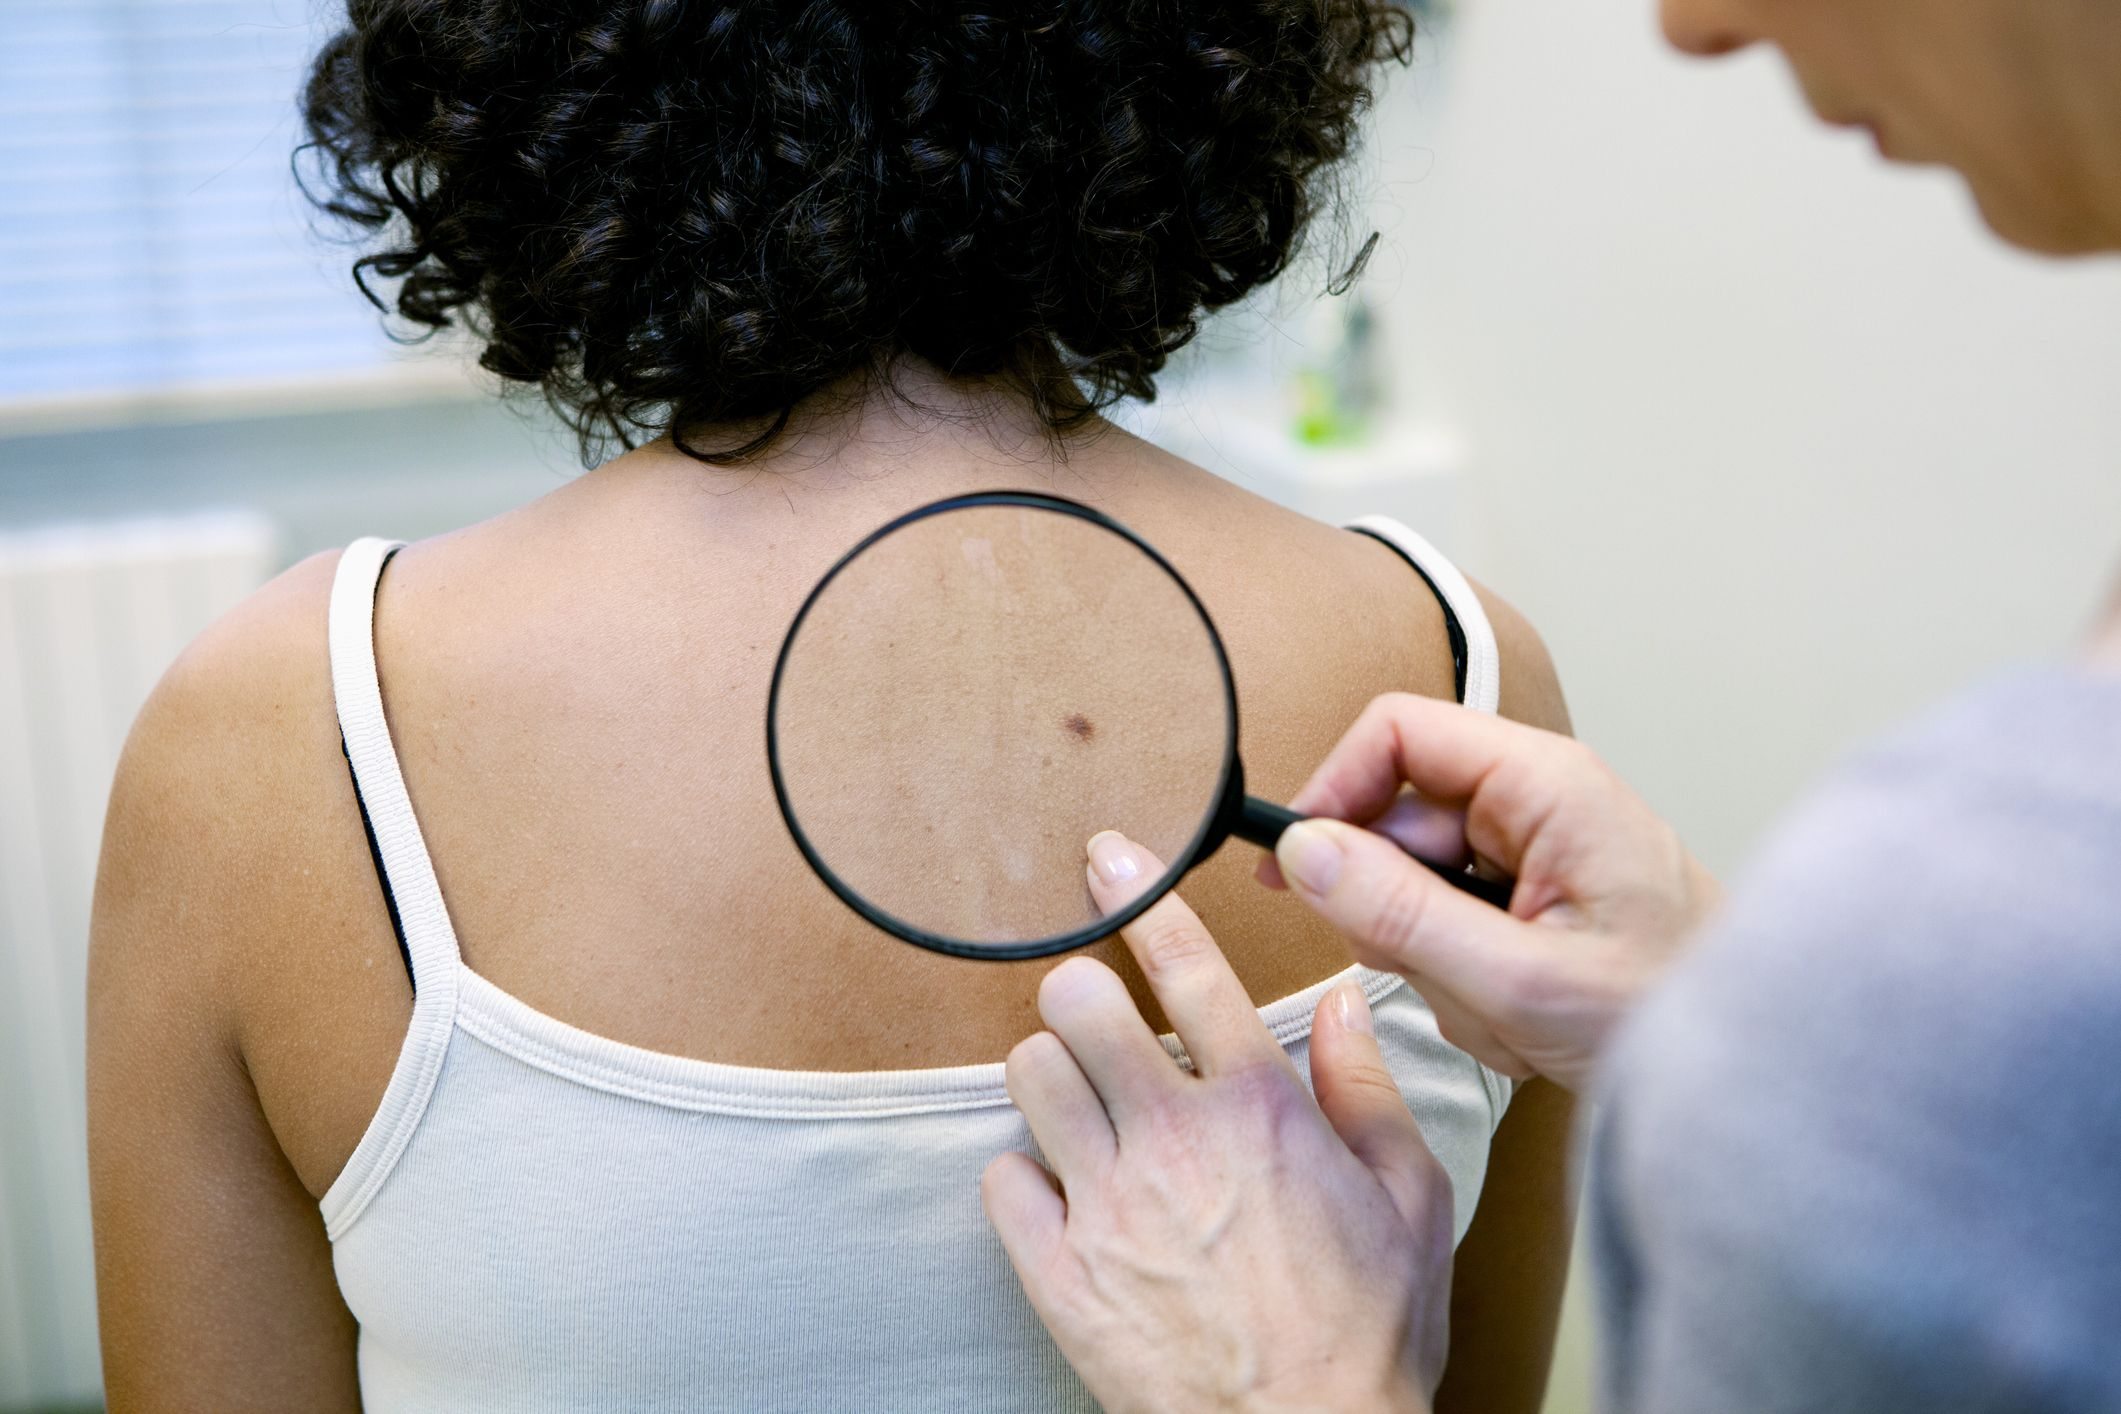 Exactly What Different Types of Skin Cancer Look Like, According to Dermatologists